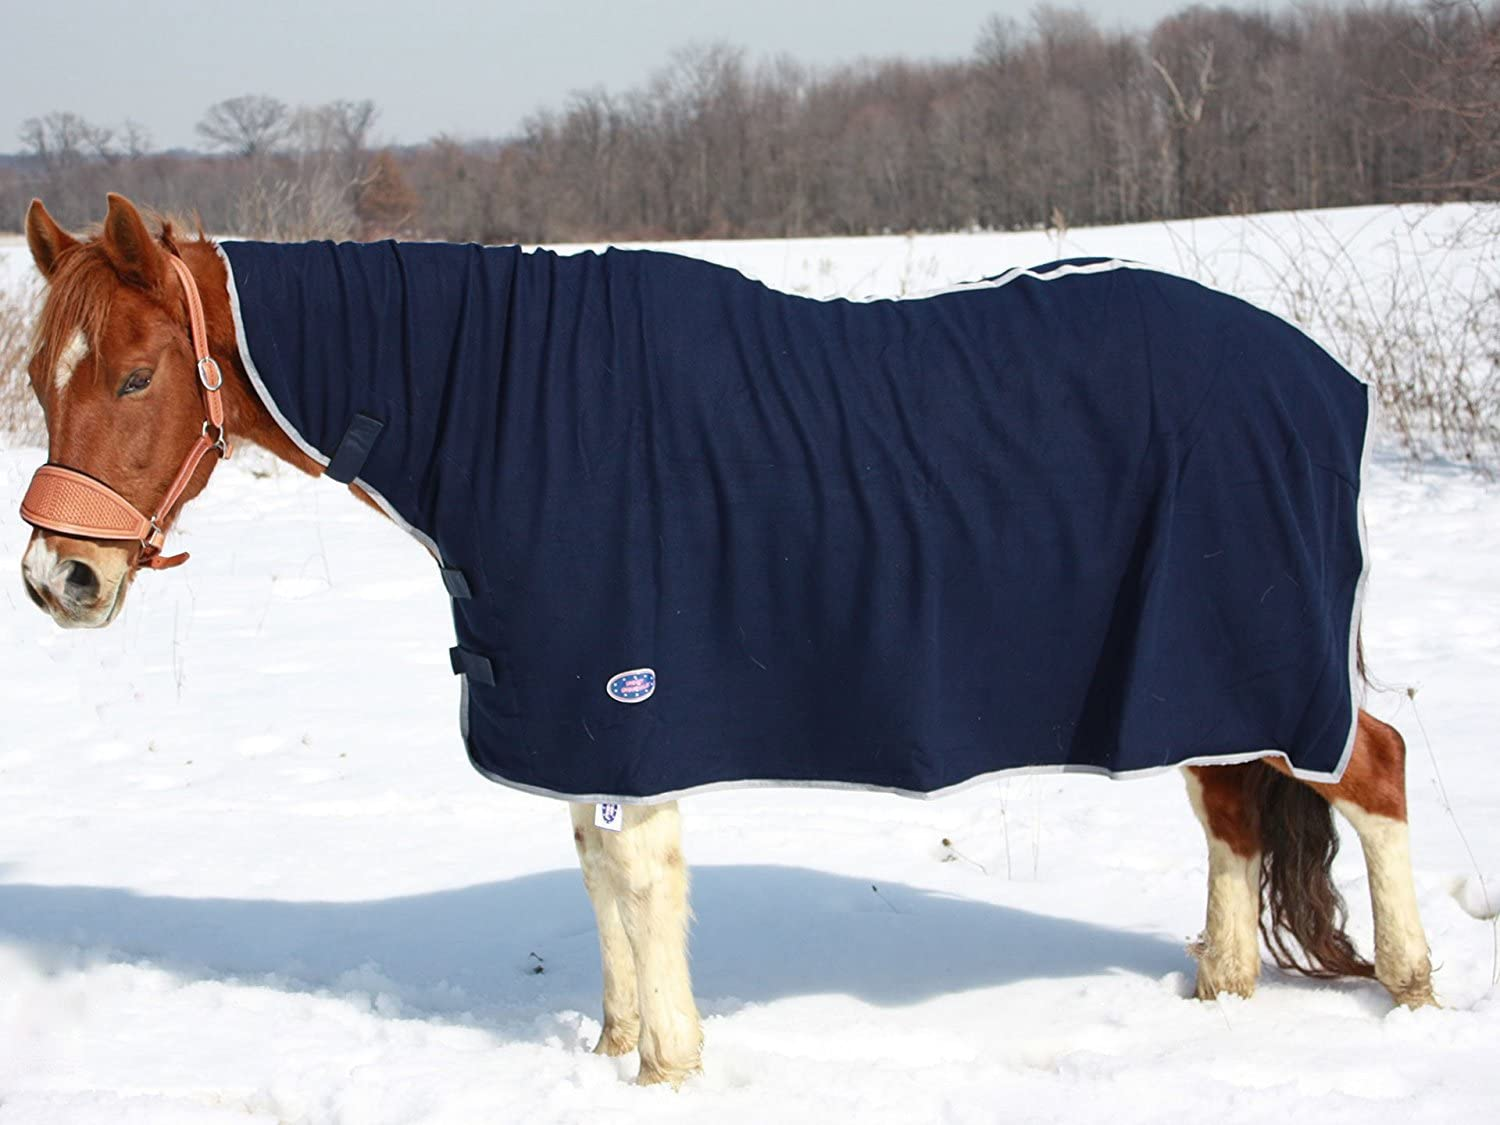 Available in Multiple Colors Derby Originals Horse Fleece Cooler /& Blanket Liner with Neck Cover